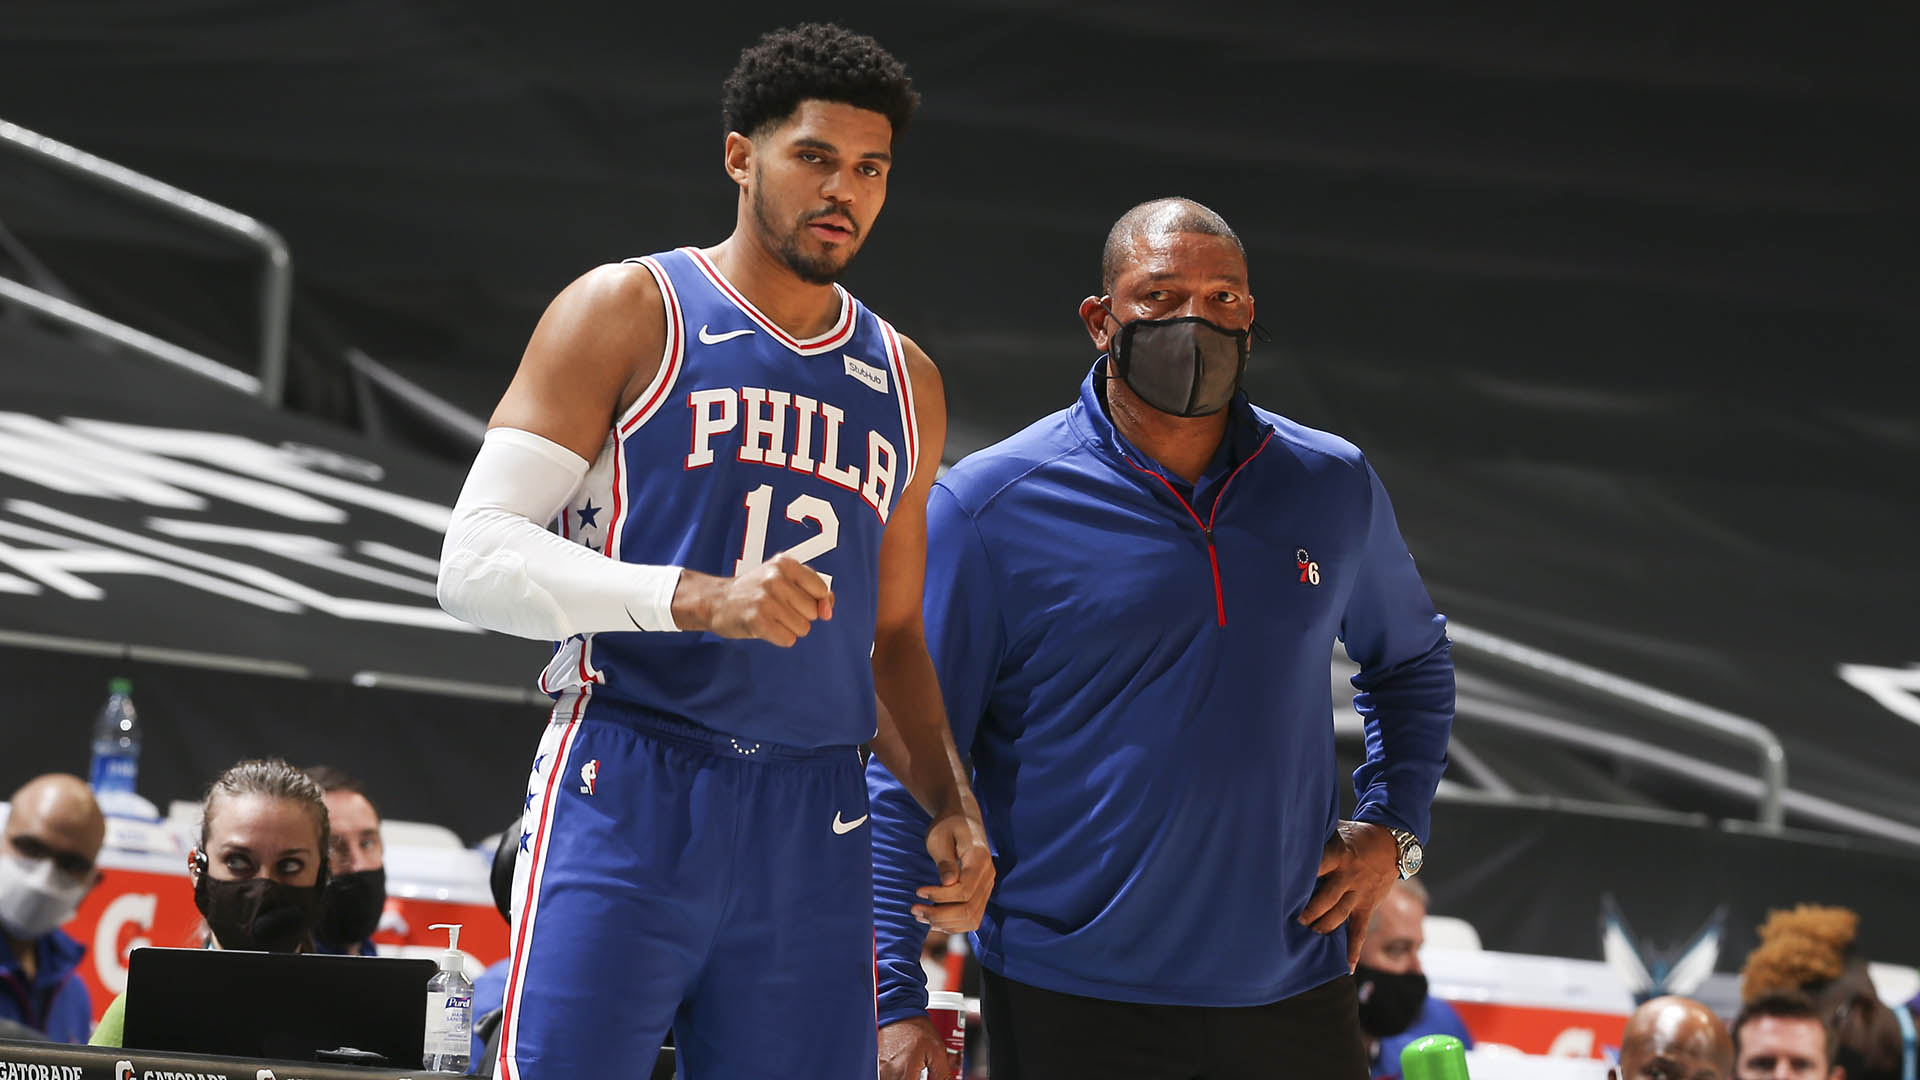 76ers' Doc Rivers to coach Team Durant in All-Star Game